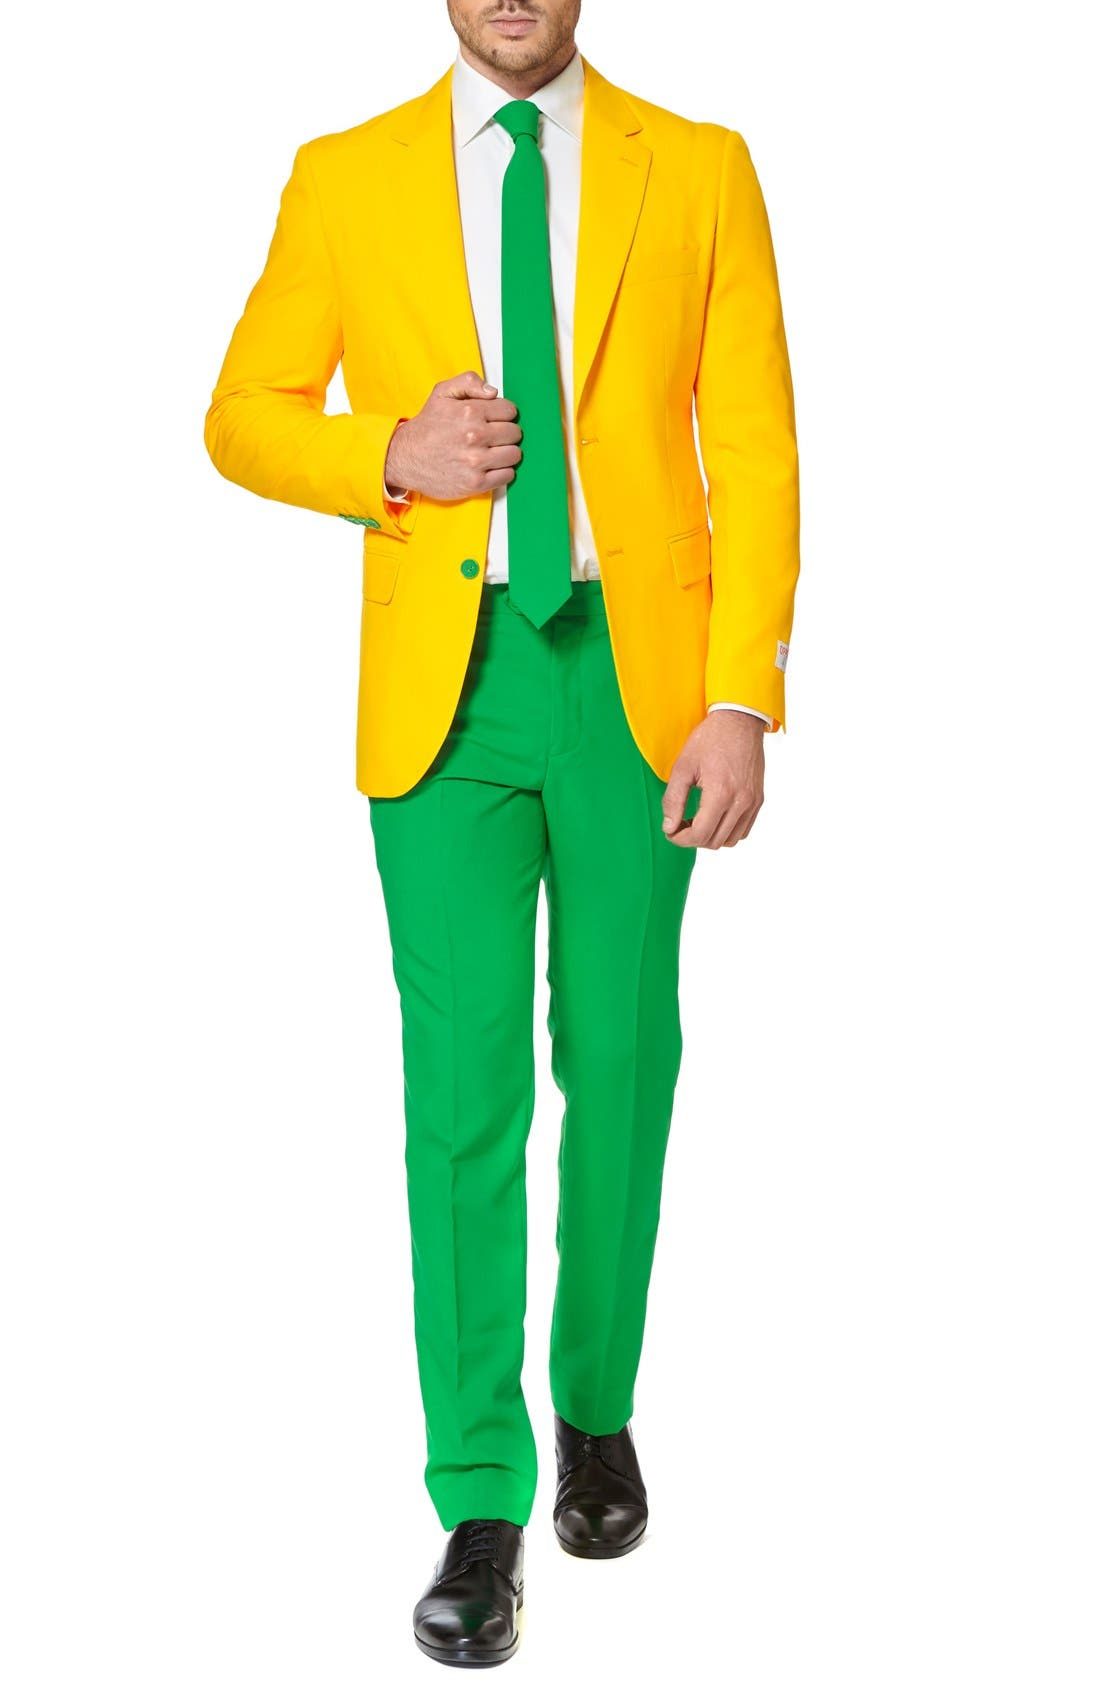 OppoSuits 'Green & Gold' Trim Fit Suit with Tie